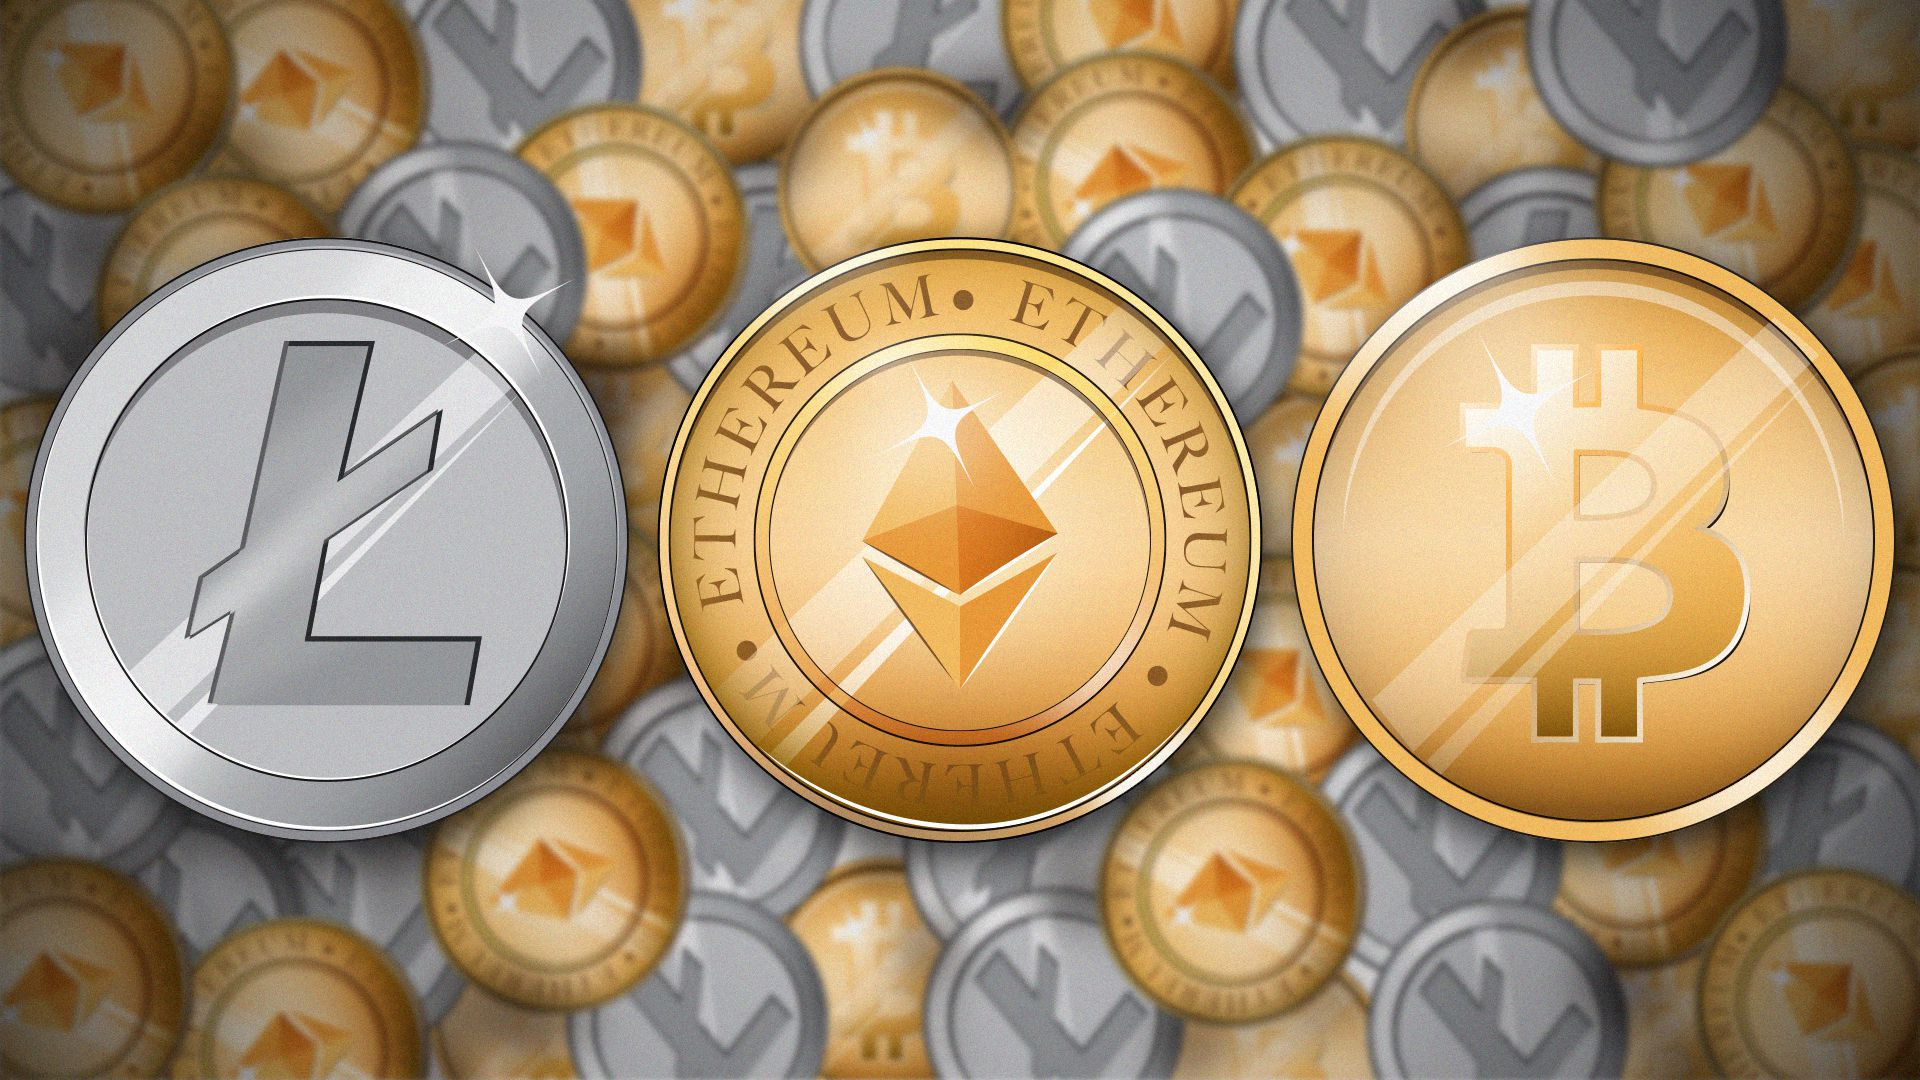 This is the most promising cryptocurrency at the moment